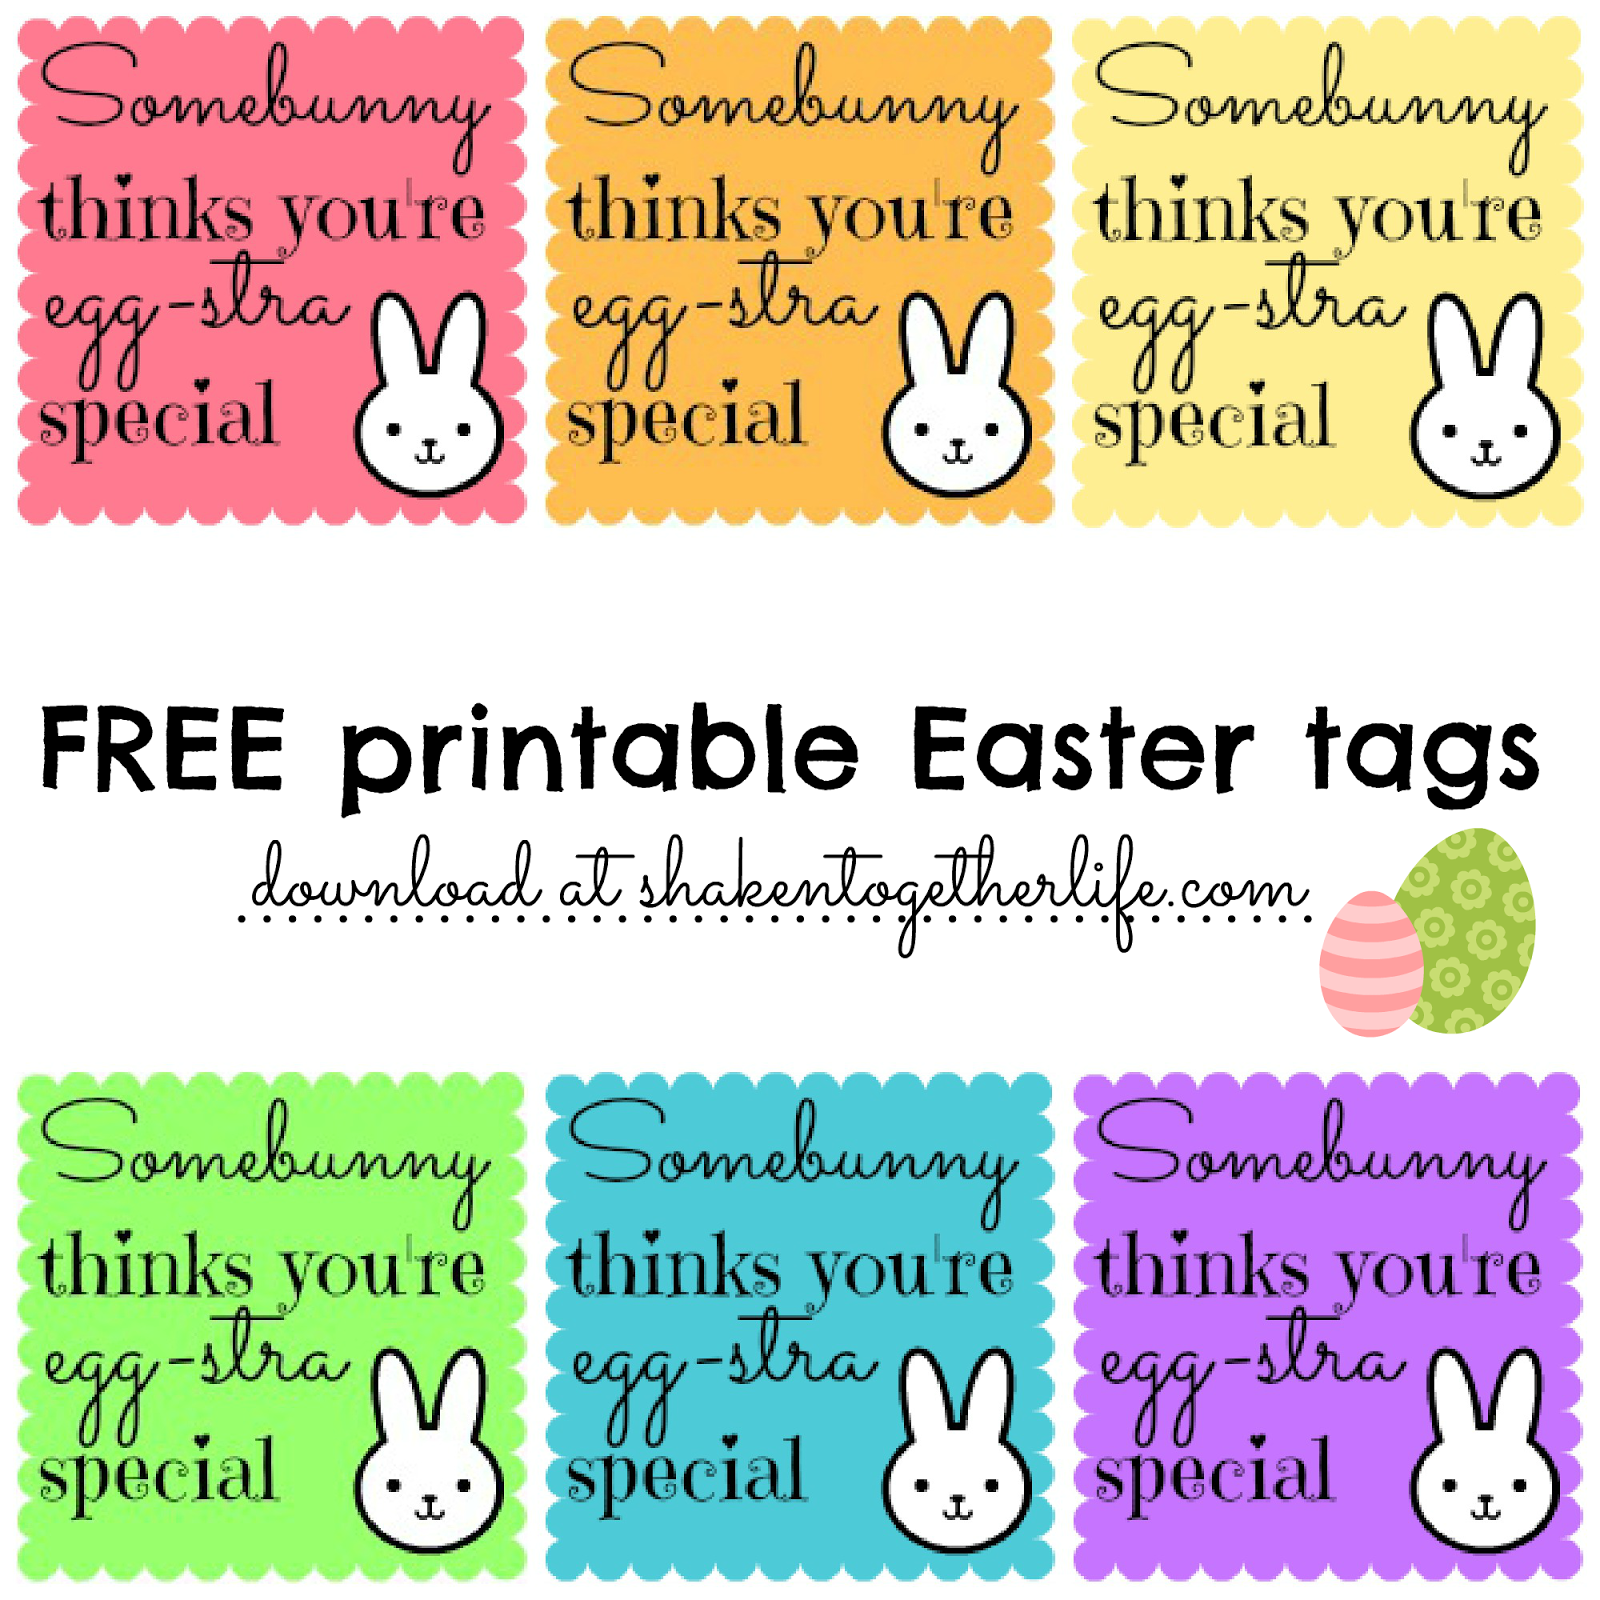 Shaken together create this bunny lip balm gifts for easter somebunny thinks youre egg stra special free printable easter gift tags at shakentogetherlif madi has had a bunny since she was a baby negle Gallery